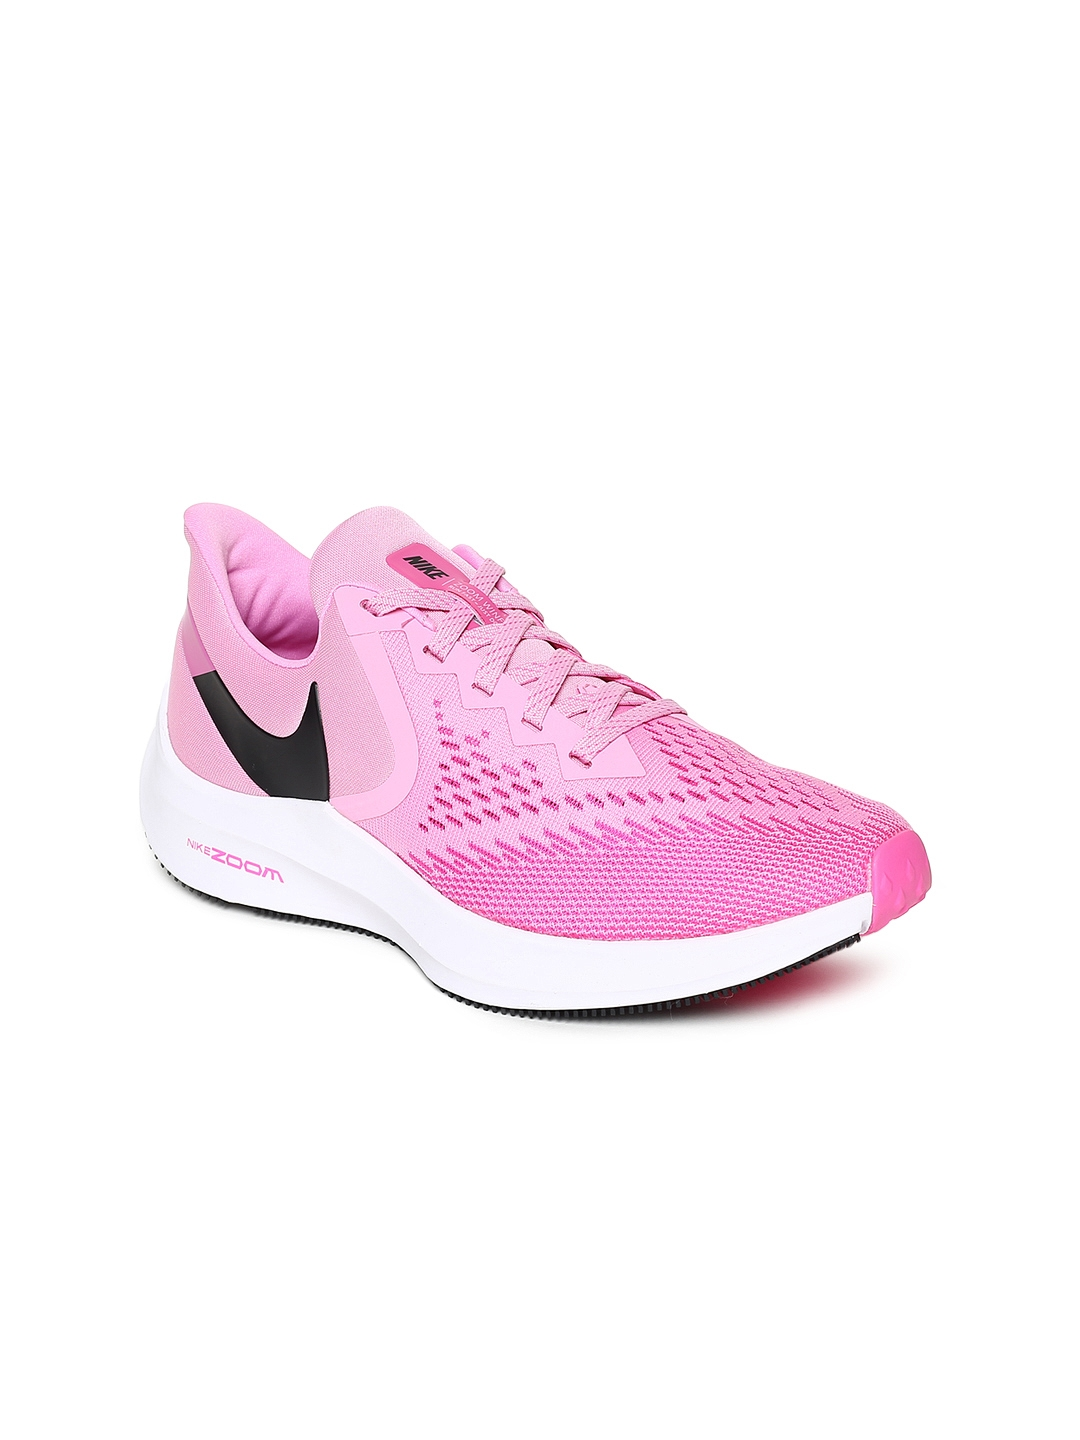 64621b449 Buy Nike Women Pink ZOOM WINFLO 6 Running Shoes - Sports Shoes for ...